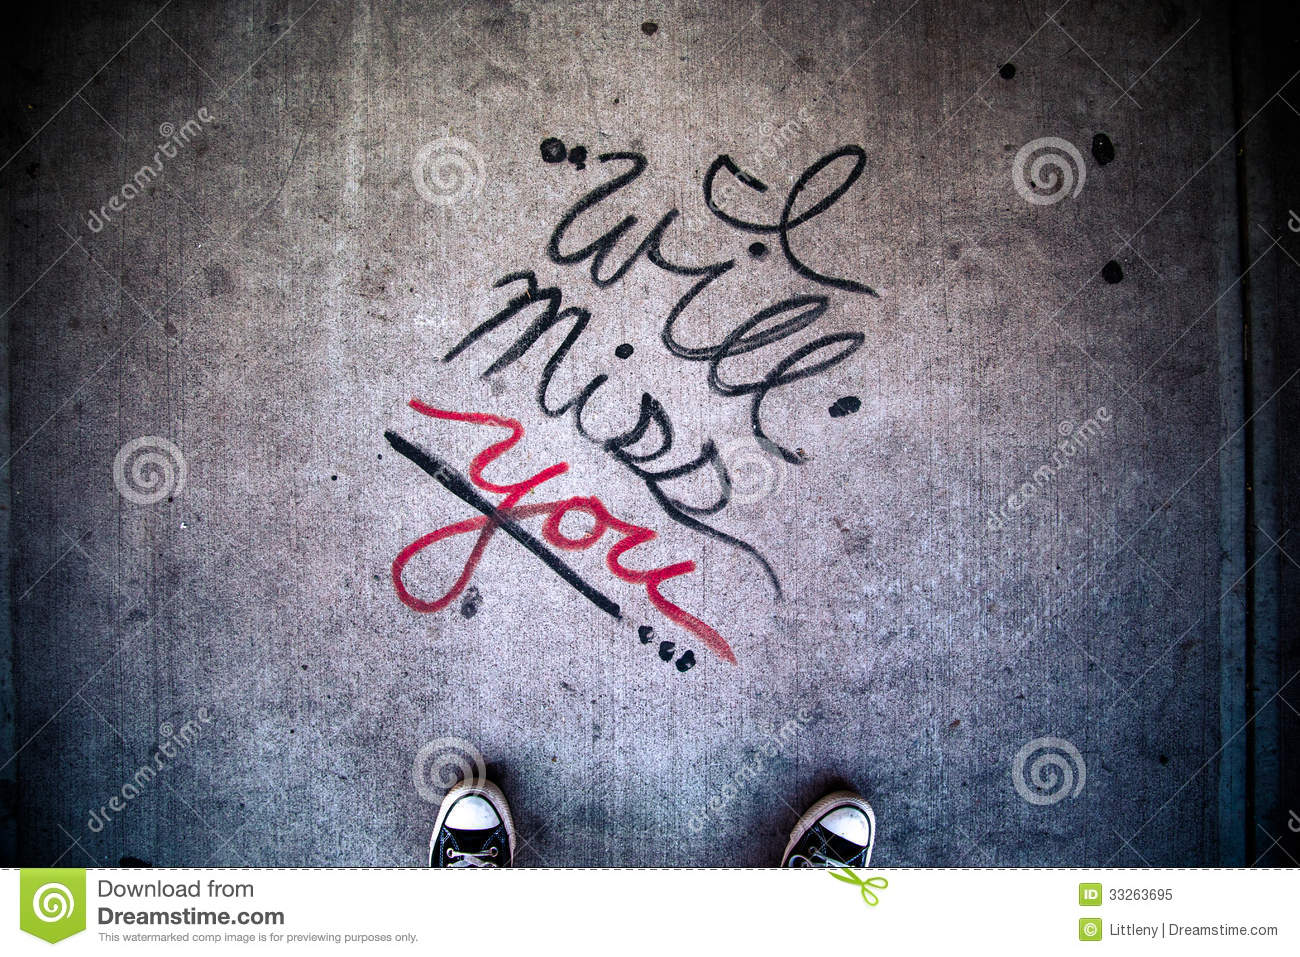 I Will Miss You stock image  Image of over, gone, script